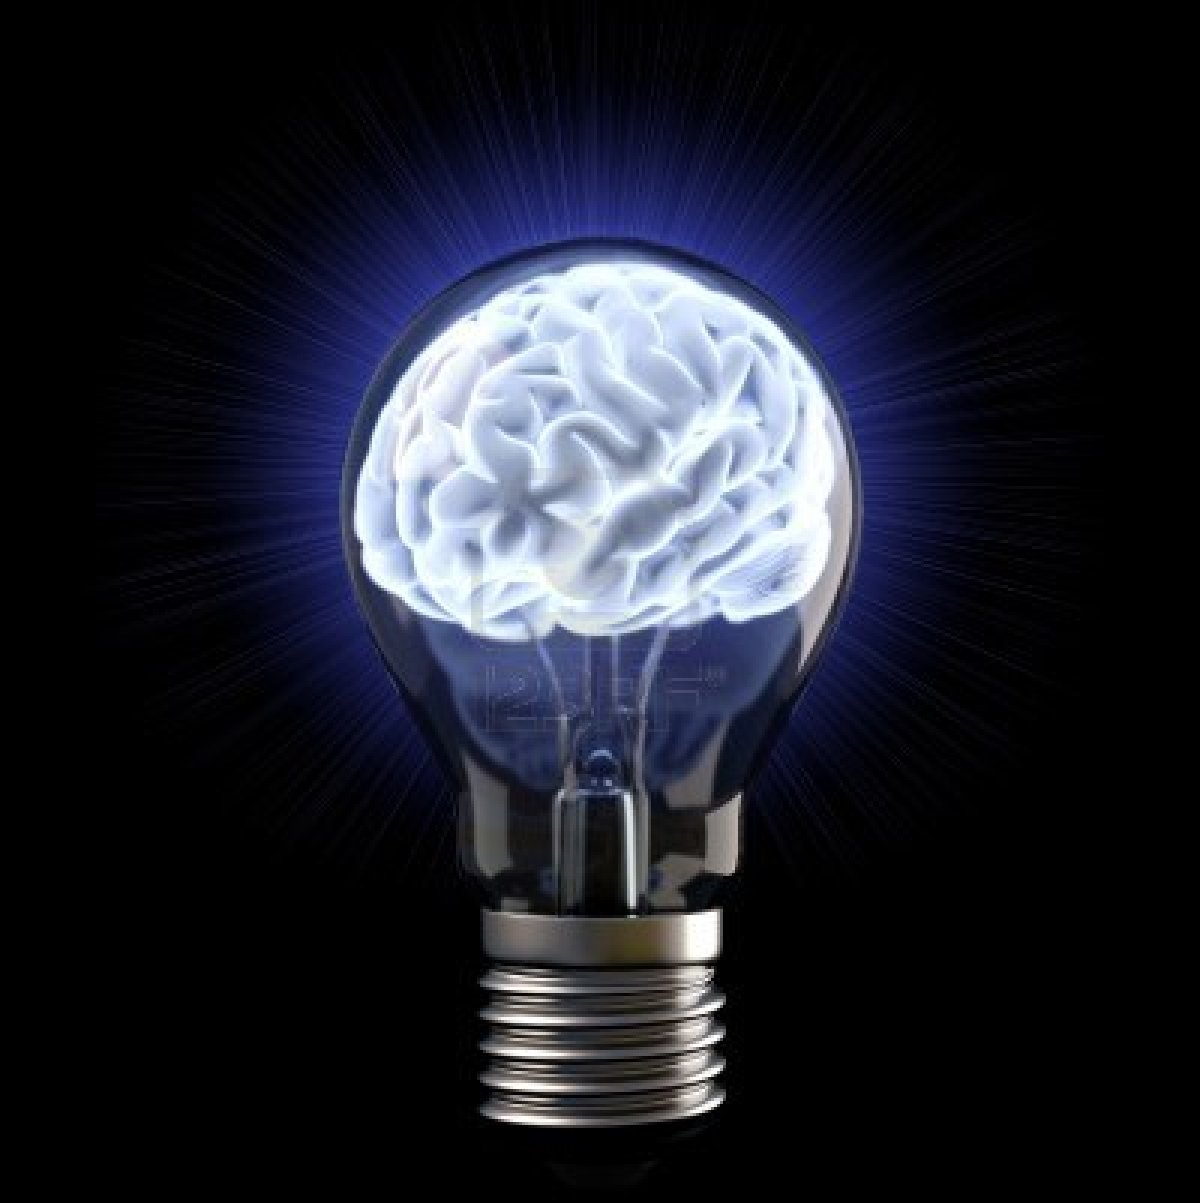 12309476-brains-in-the-light-bulb-isolated-on-white